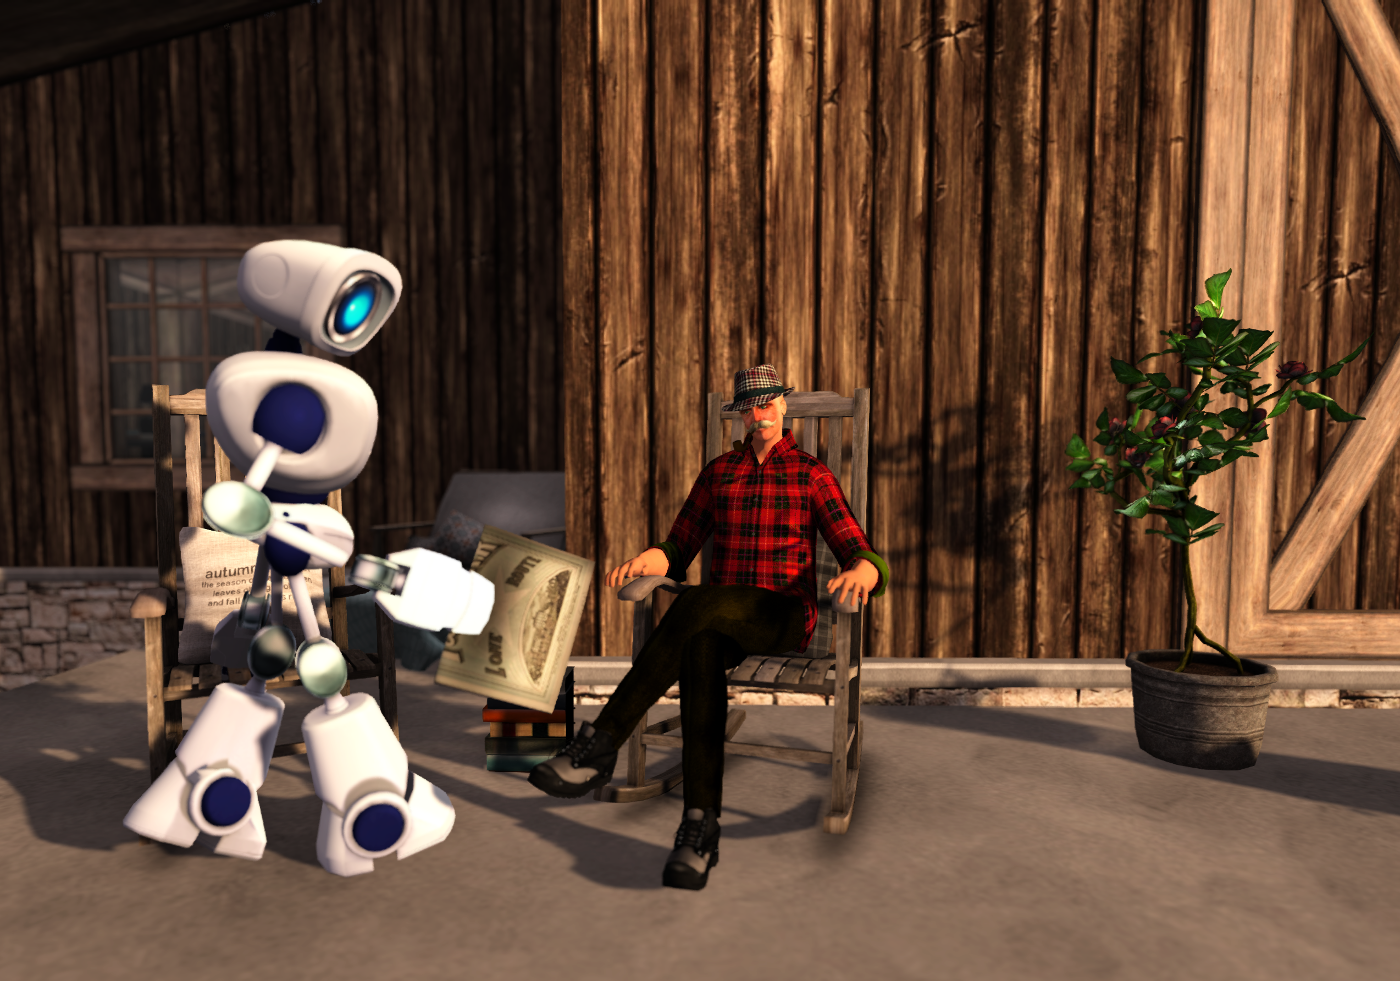 A robot and his mature human friend